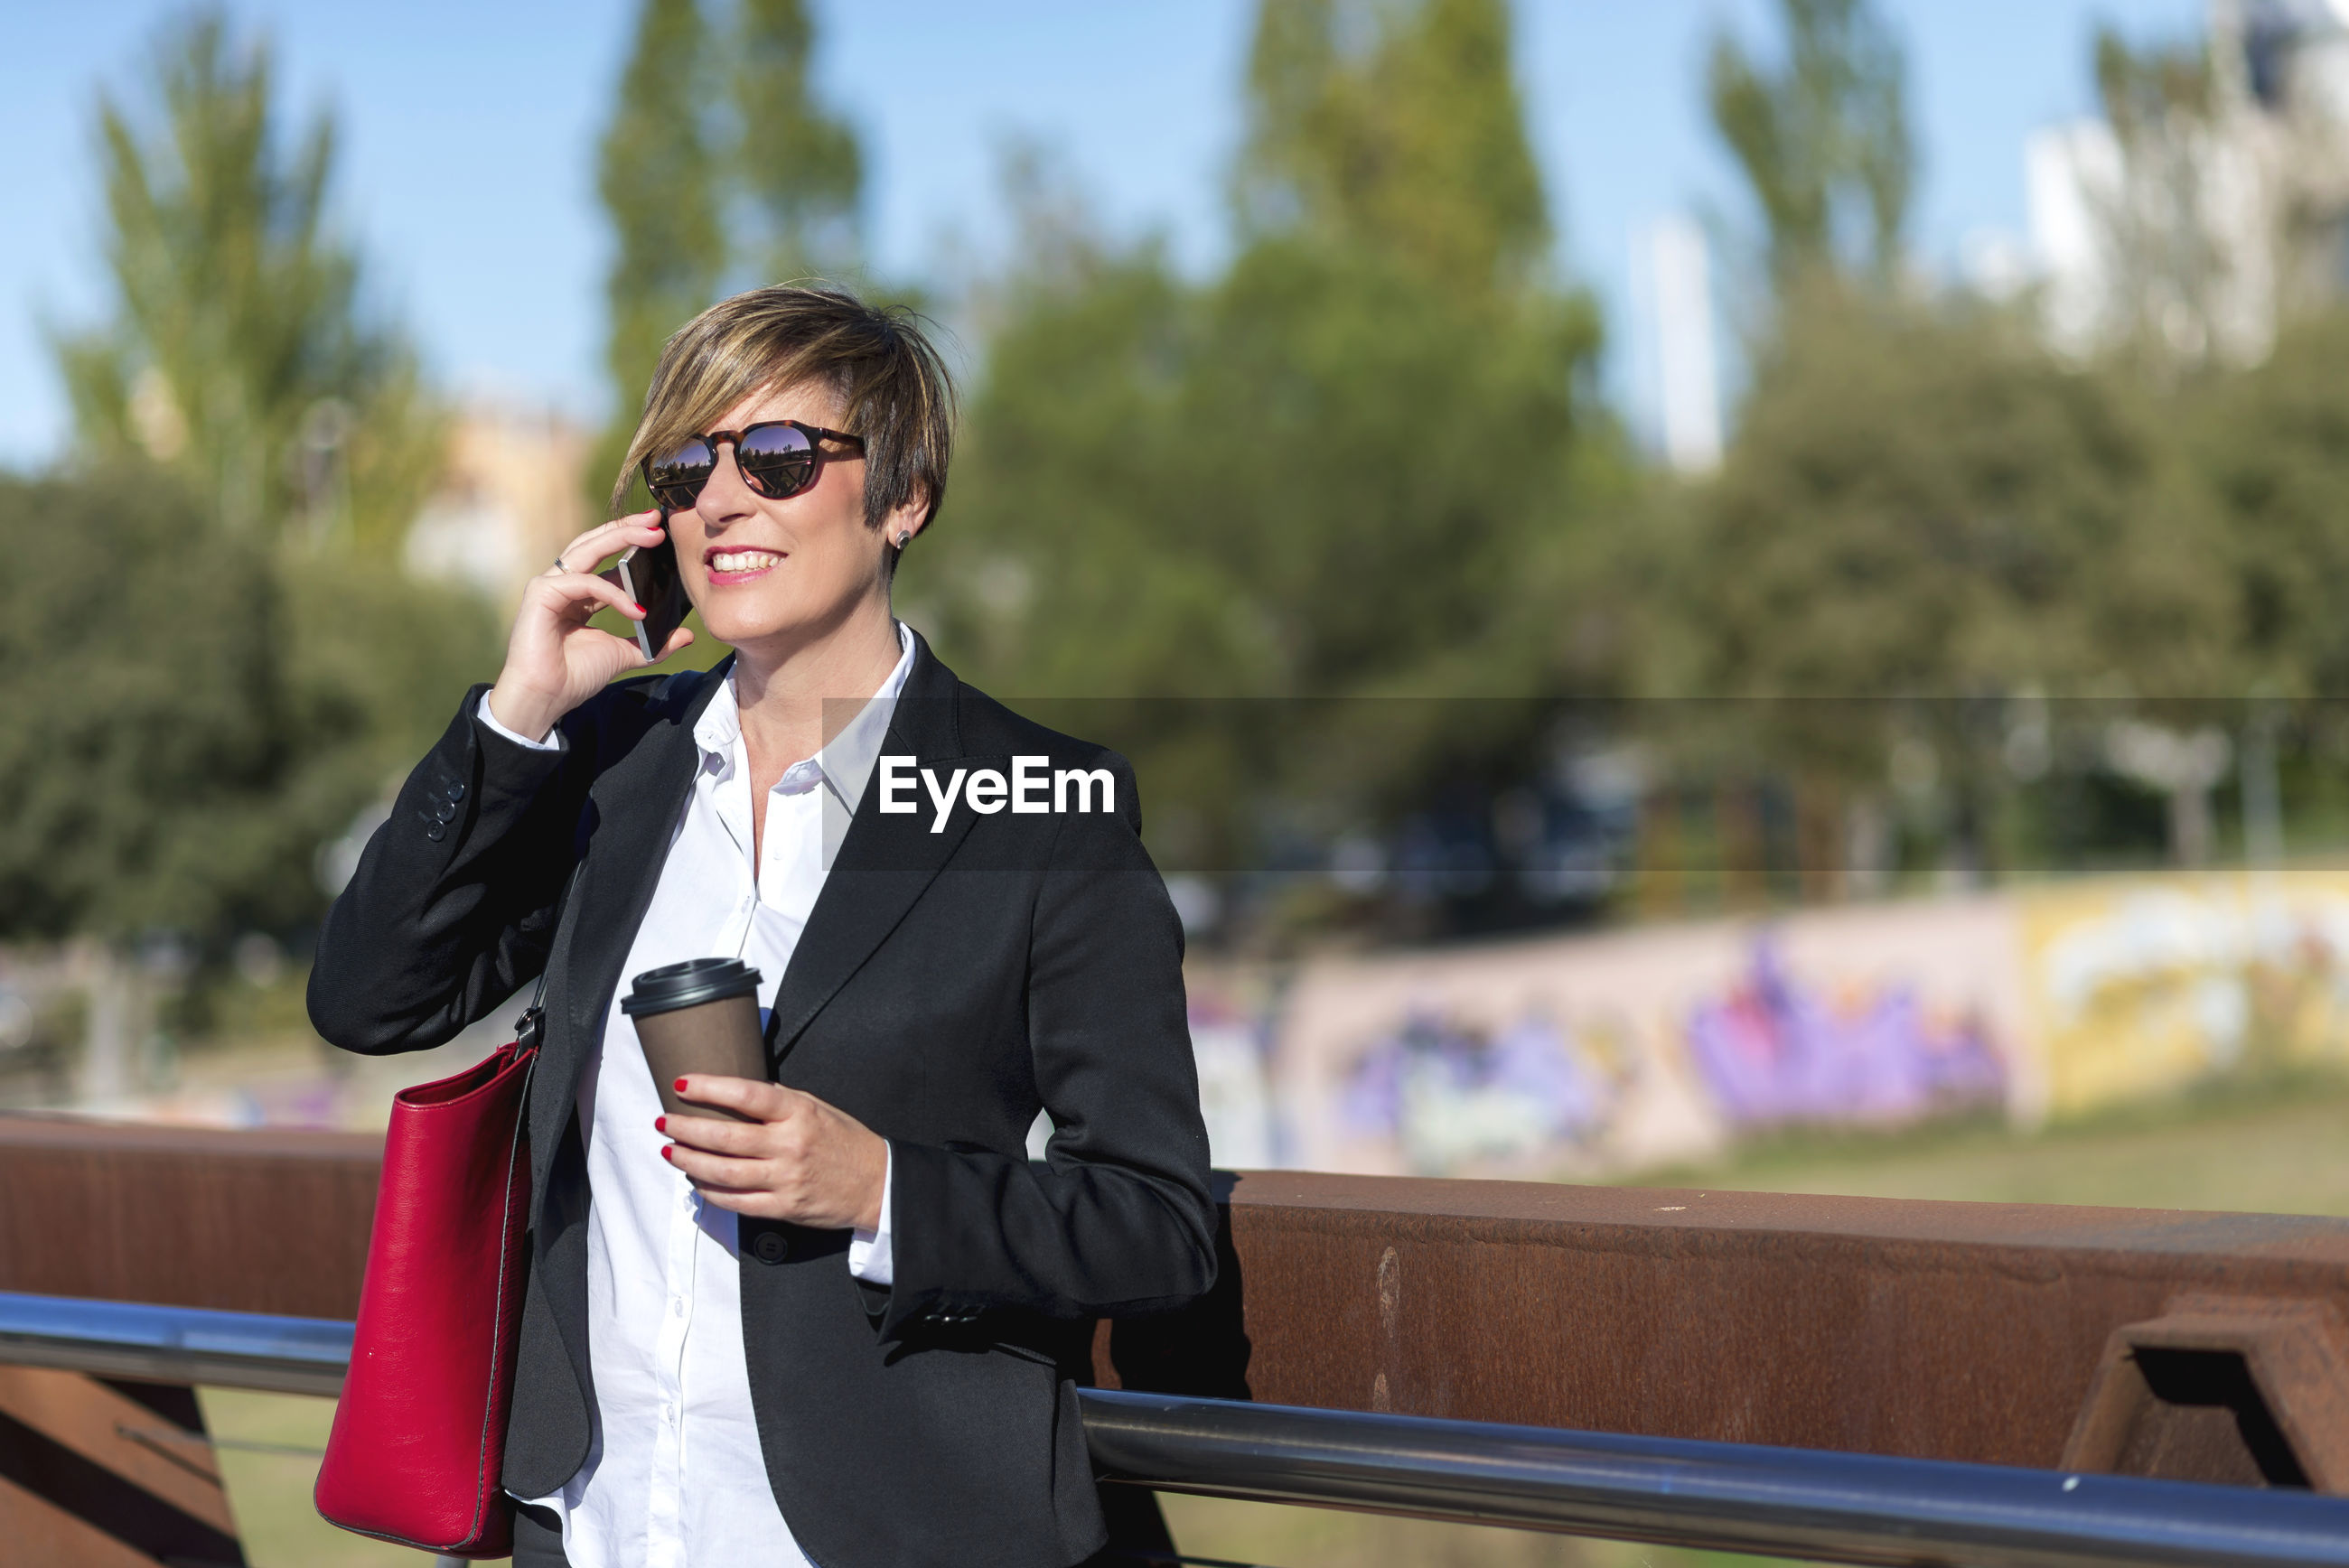 Smiling businesswoman talking on mobile phone while standing in city